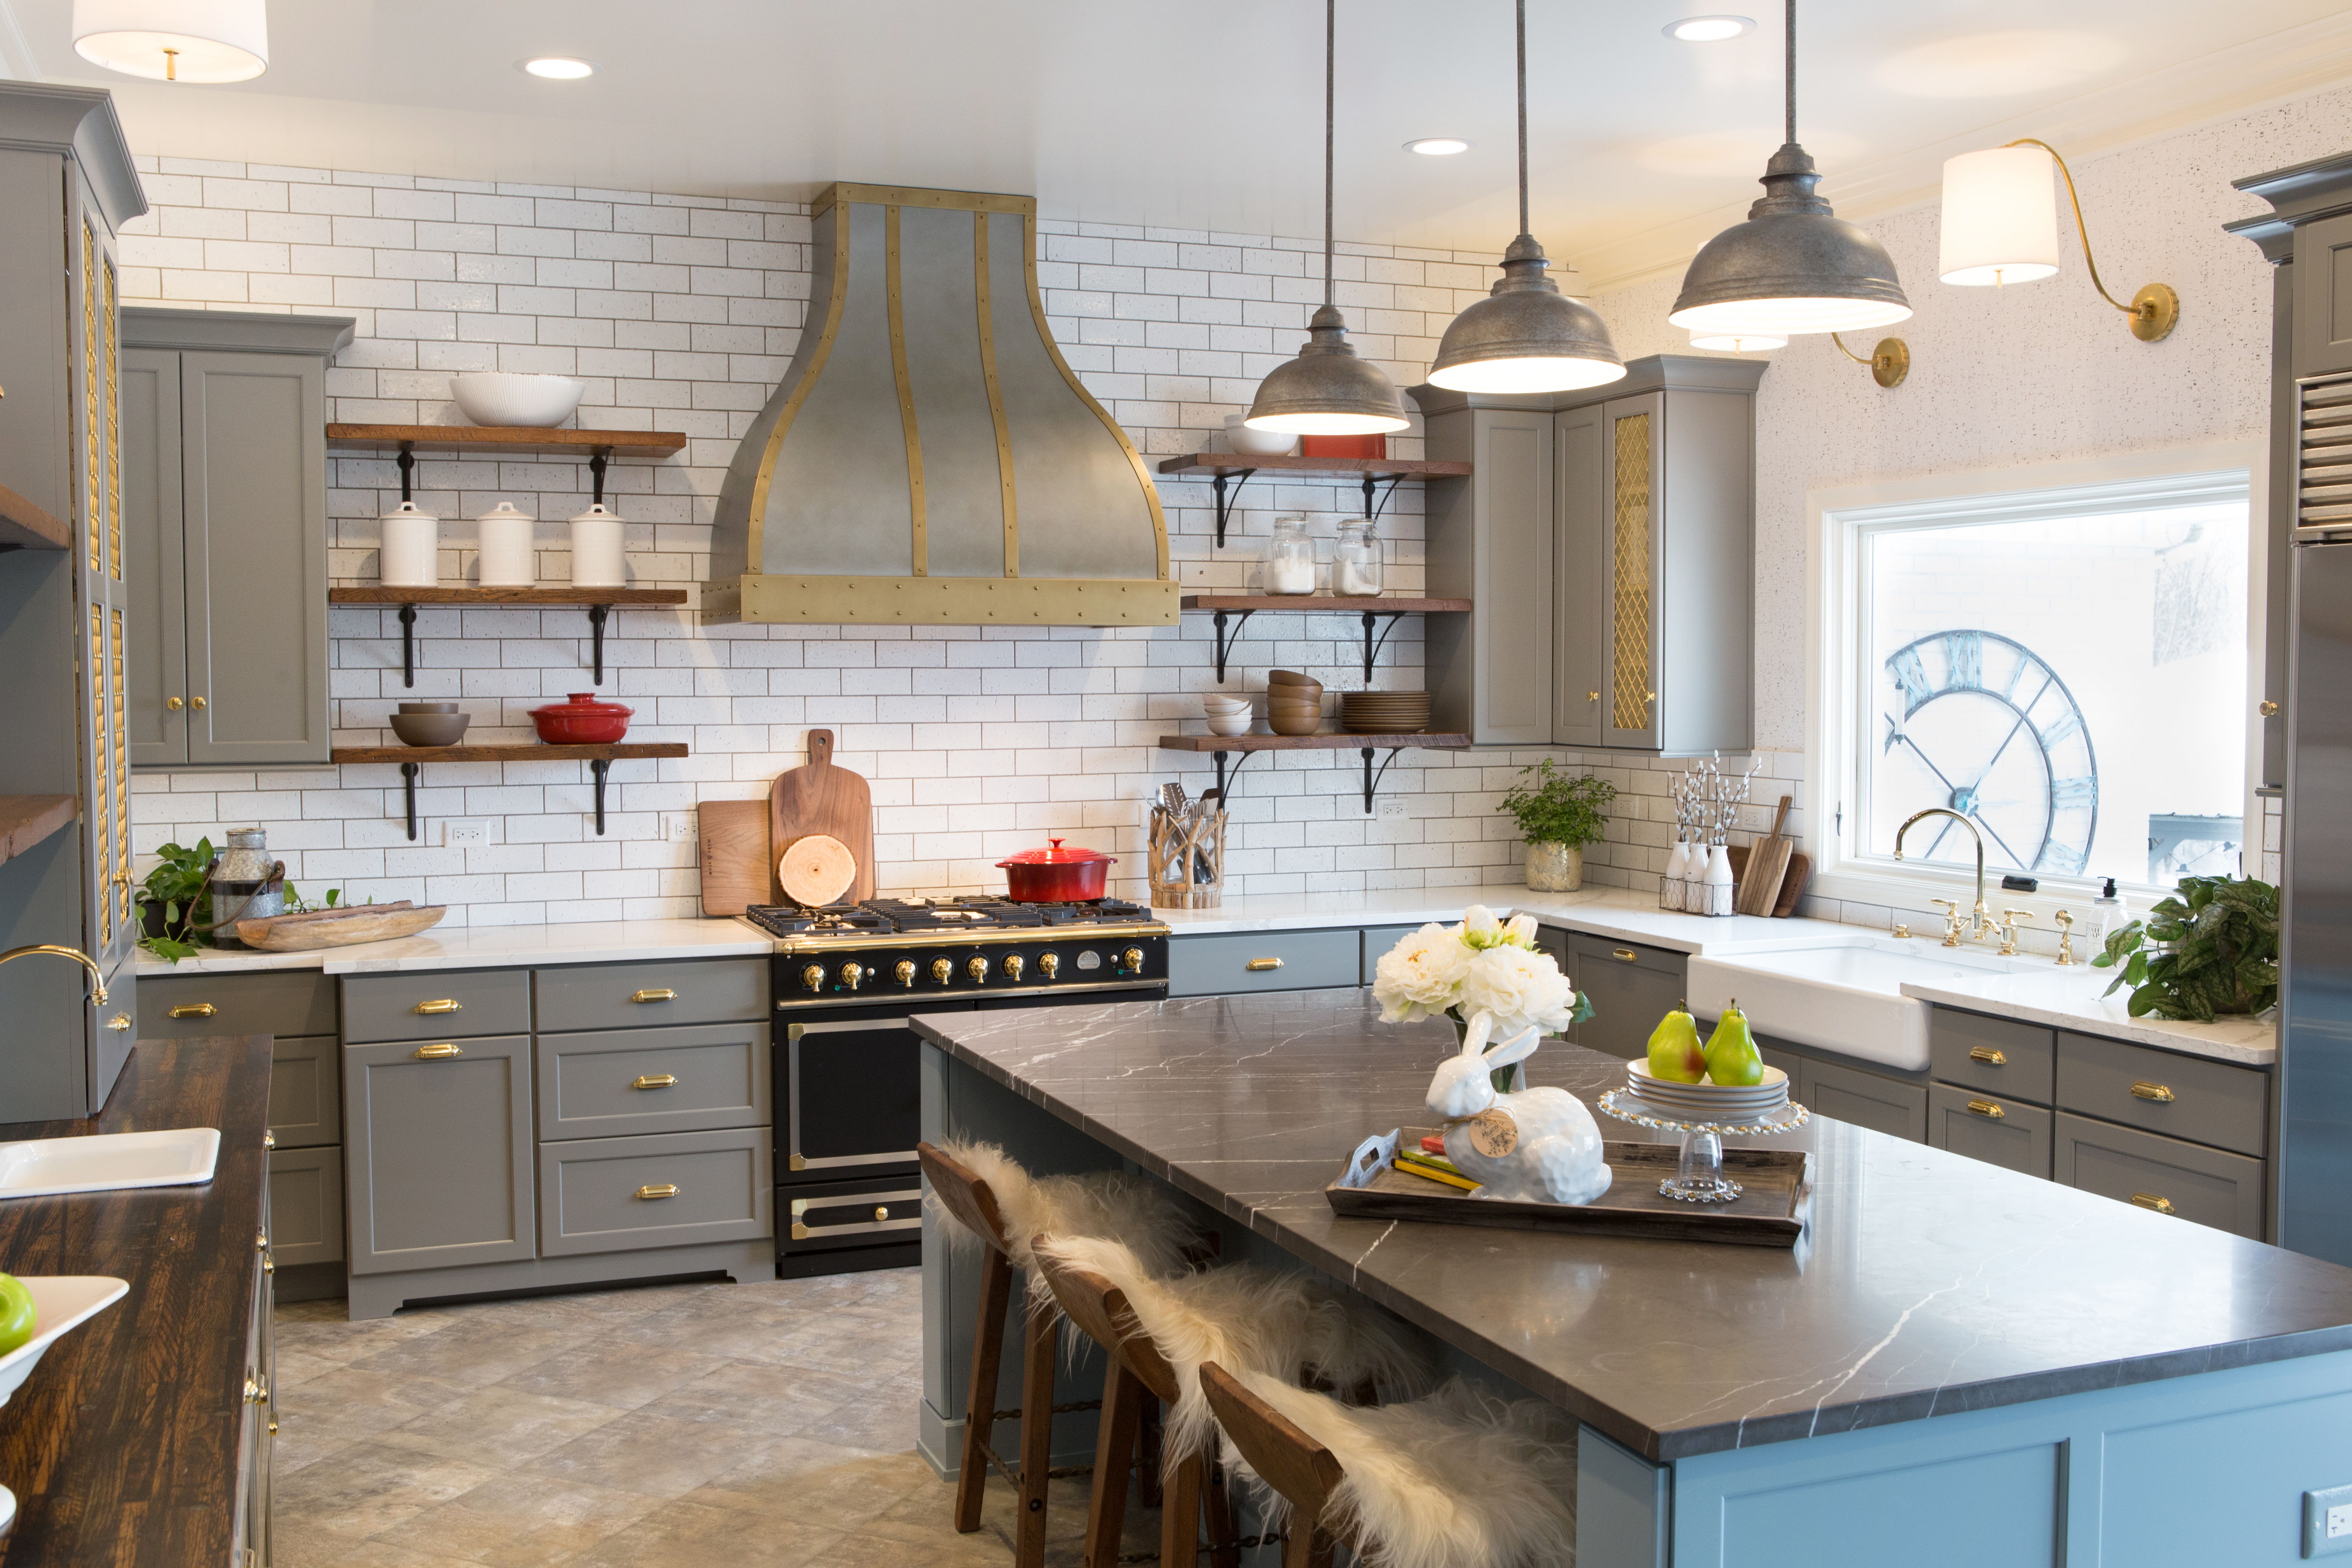 Kitchen in Dura Supreme Cabinetry, Kendall Panel door style in Personal Paint Match painted finishes.